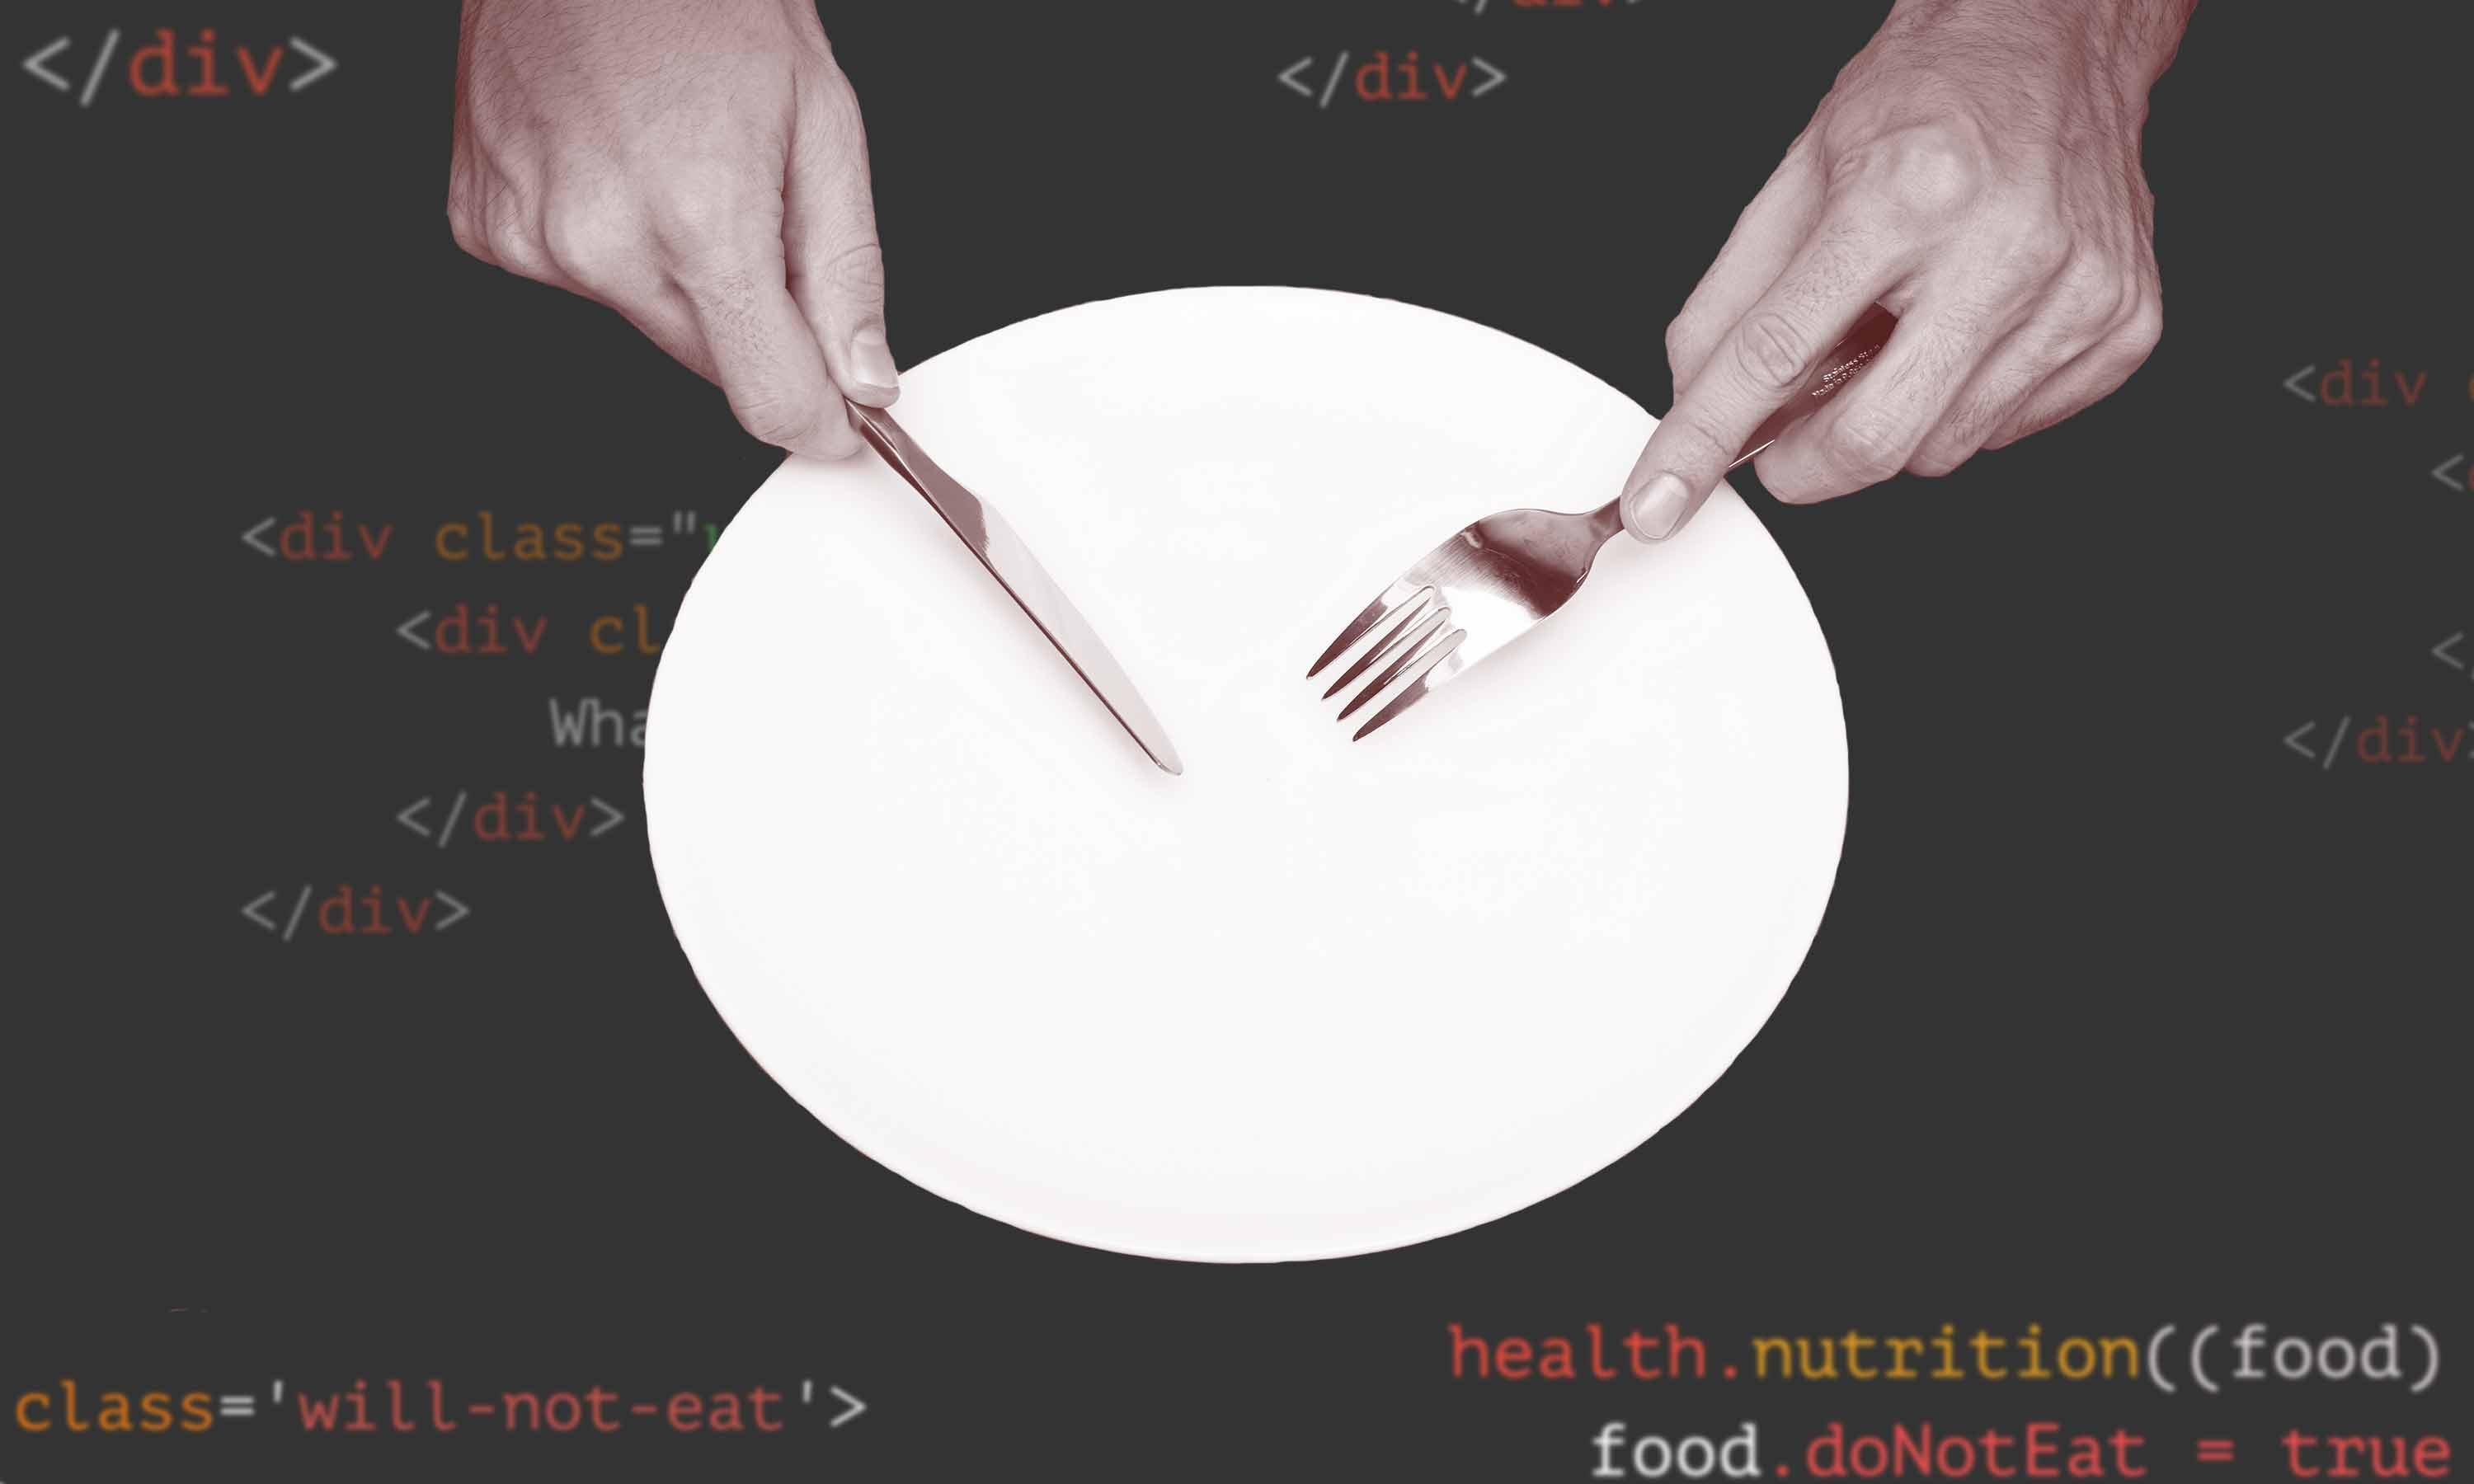 Extreme fasting: how Silicon Valley is rebranding eating disorders